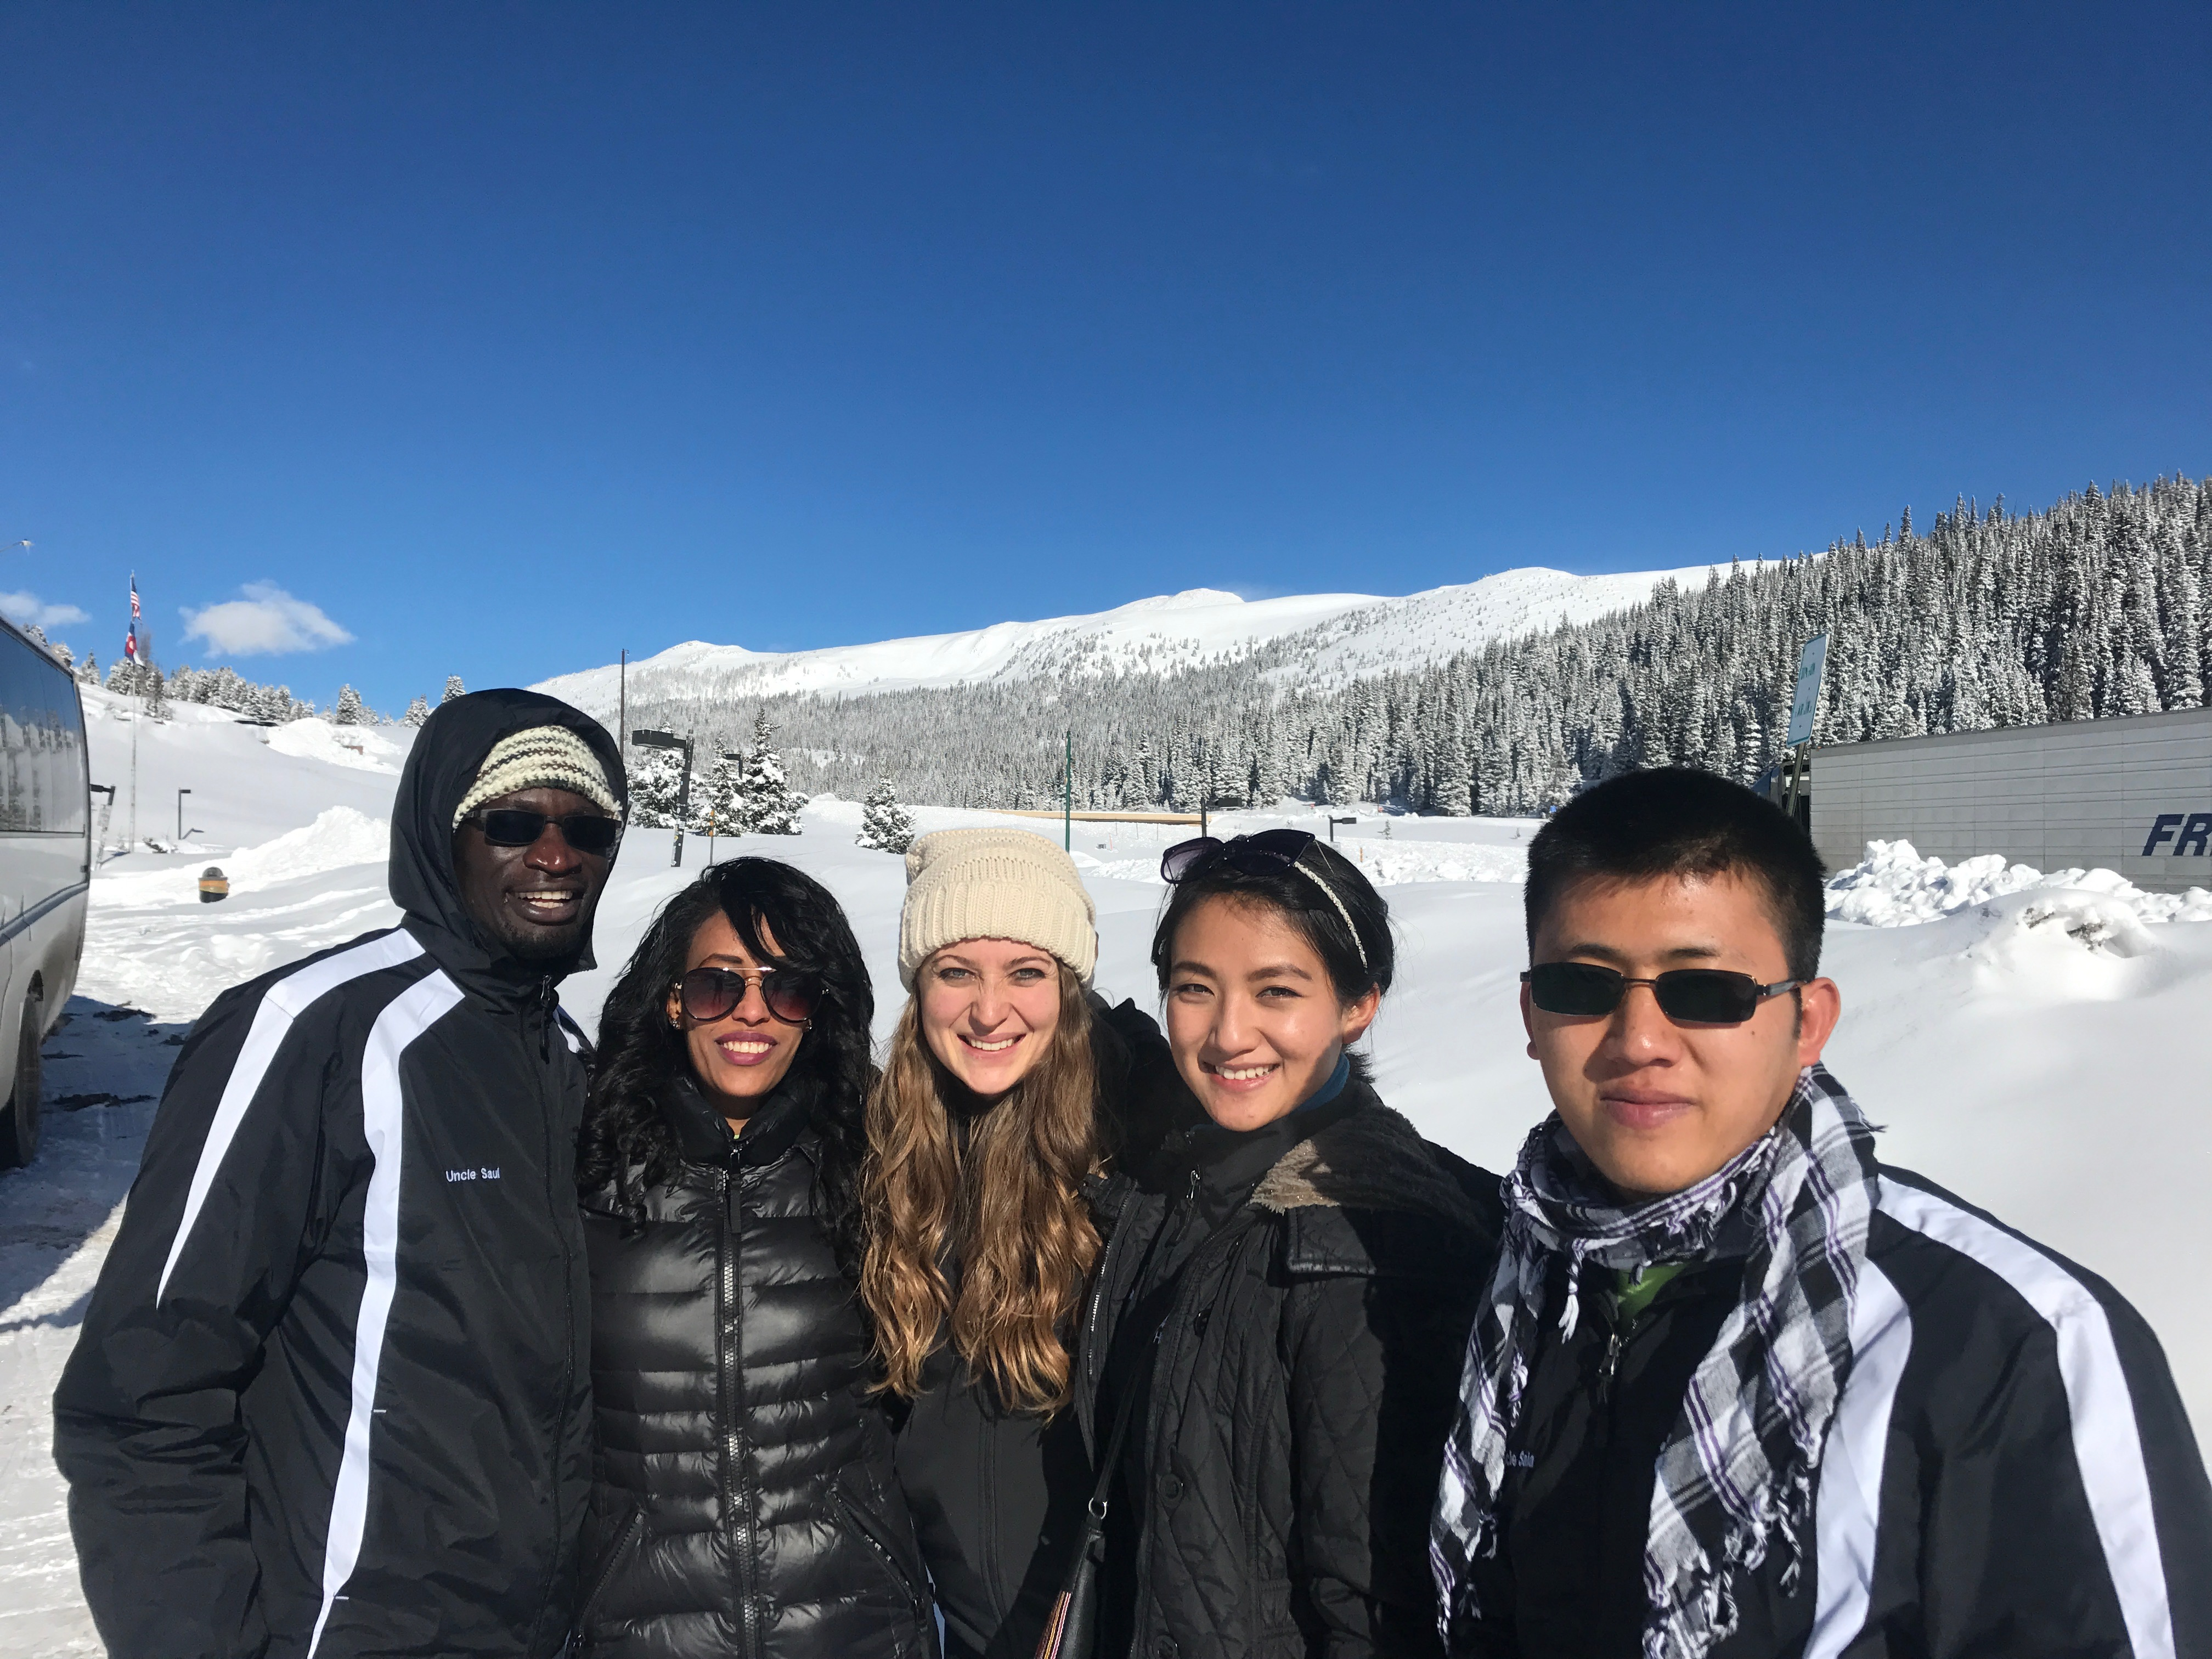 uncle-saul-auntie-mimi-auntie-april-auntie-angela-and-uncle-saia-at-the-top-of-vail-pass-in-the-colorado-rocky-mountains_32200027825_o